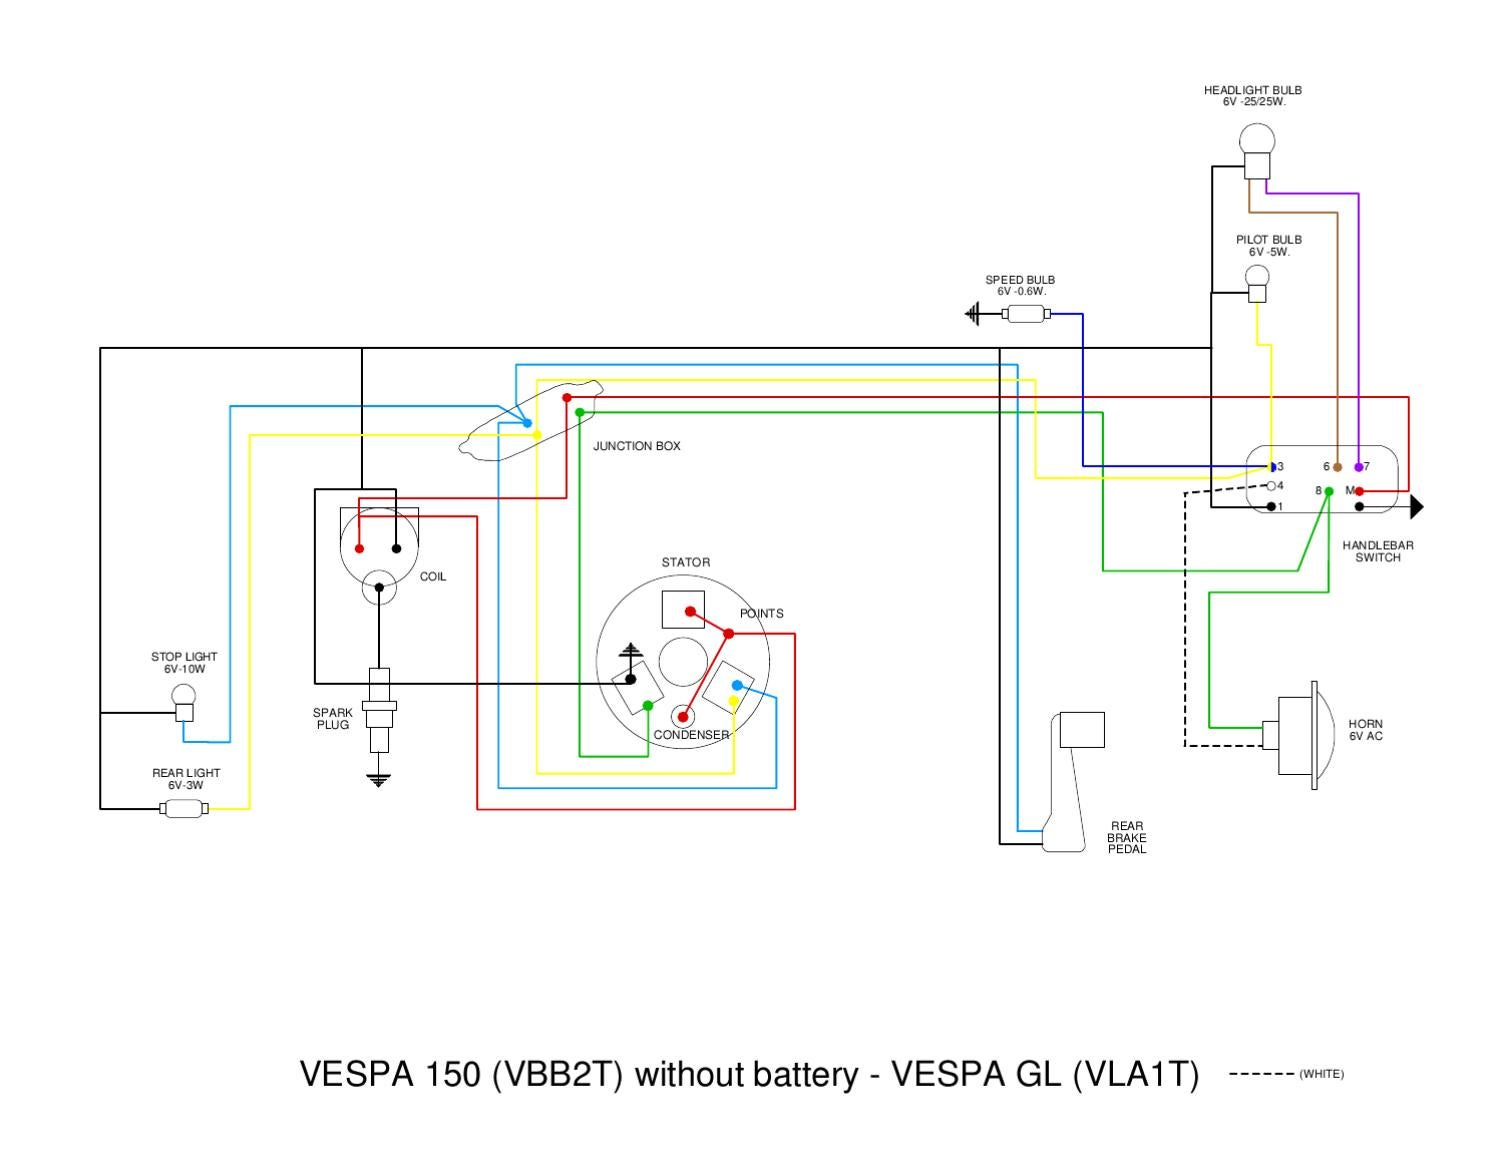 Basic Vespa 12v Wire Diagram - Auto Electrical Wiring Diagram on basic wire codes, basic phone wiring diagram, basic switch wiring diagram, basic automotive wiring diagram, basic wire art, basic wire techniques, basic wire patterns, electrical wiring diagrams,